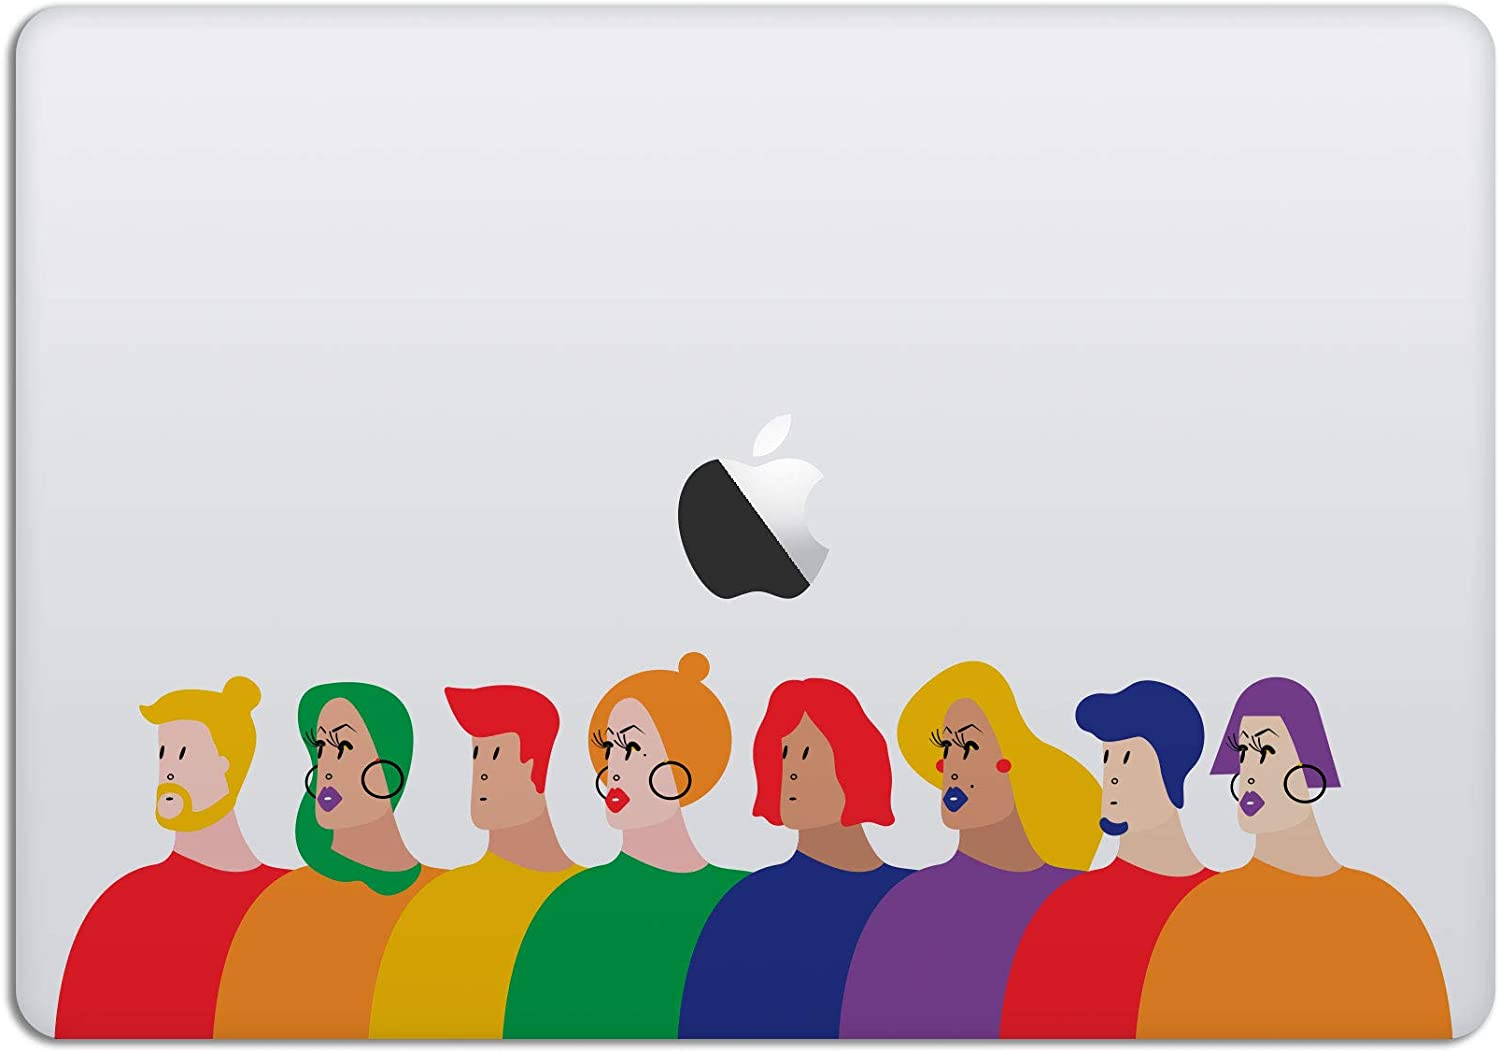 Laptop Stickers MacBook Decal - Removable Waterproof Vinyl -LGBTQ Pride Parade - Love is Love Decal Skin for Apple MacBook Air Pro 13 15 inch Mac Retina - Decorative Sticker by Artsybb